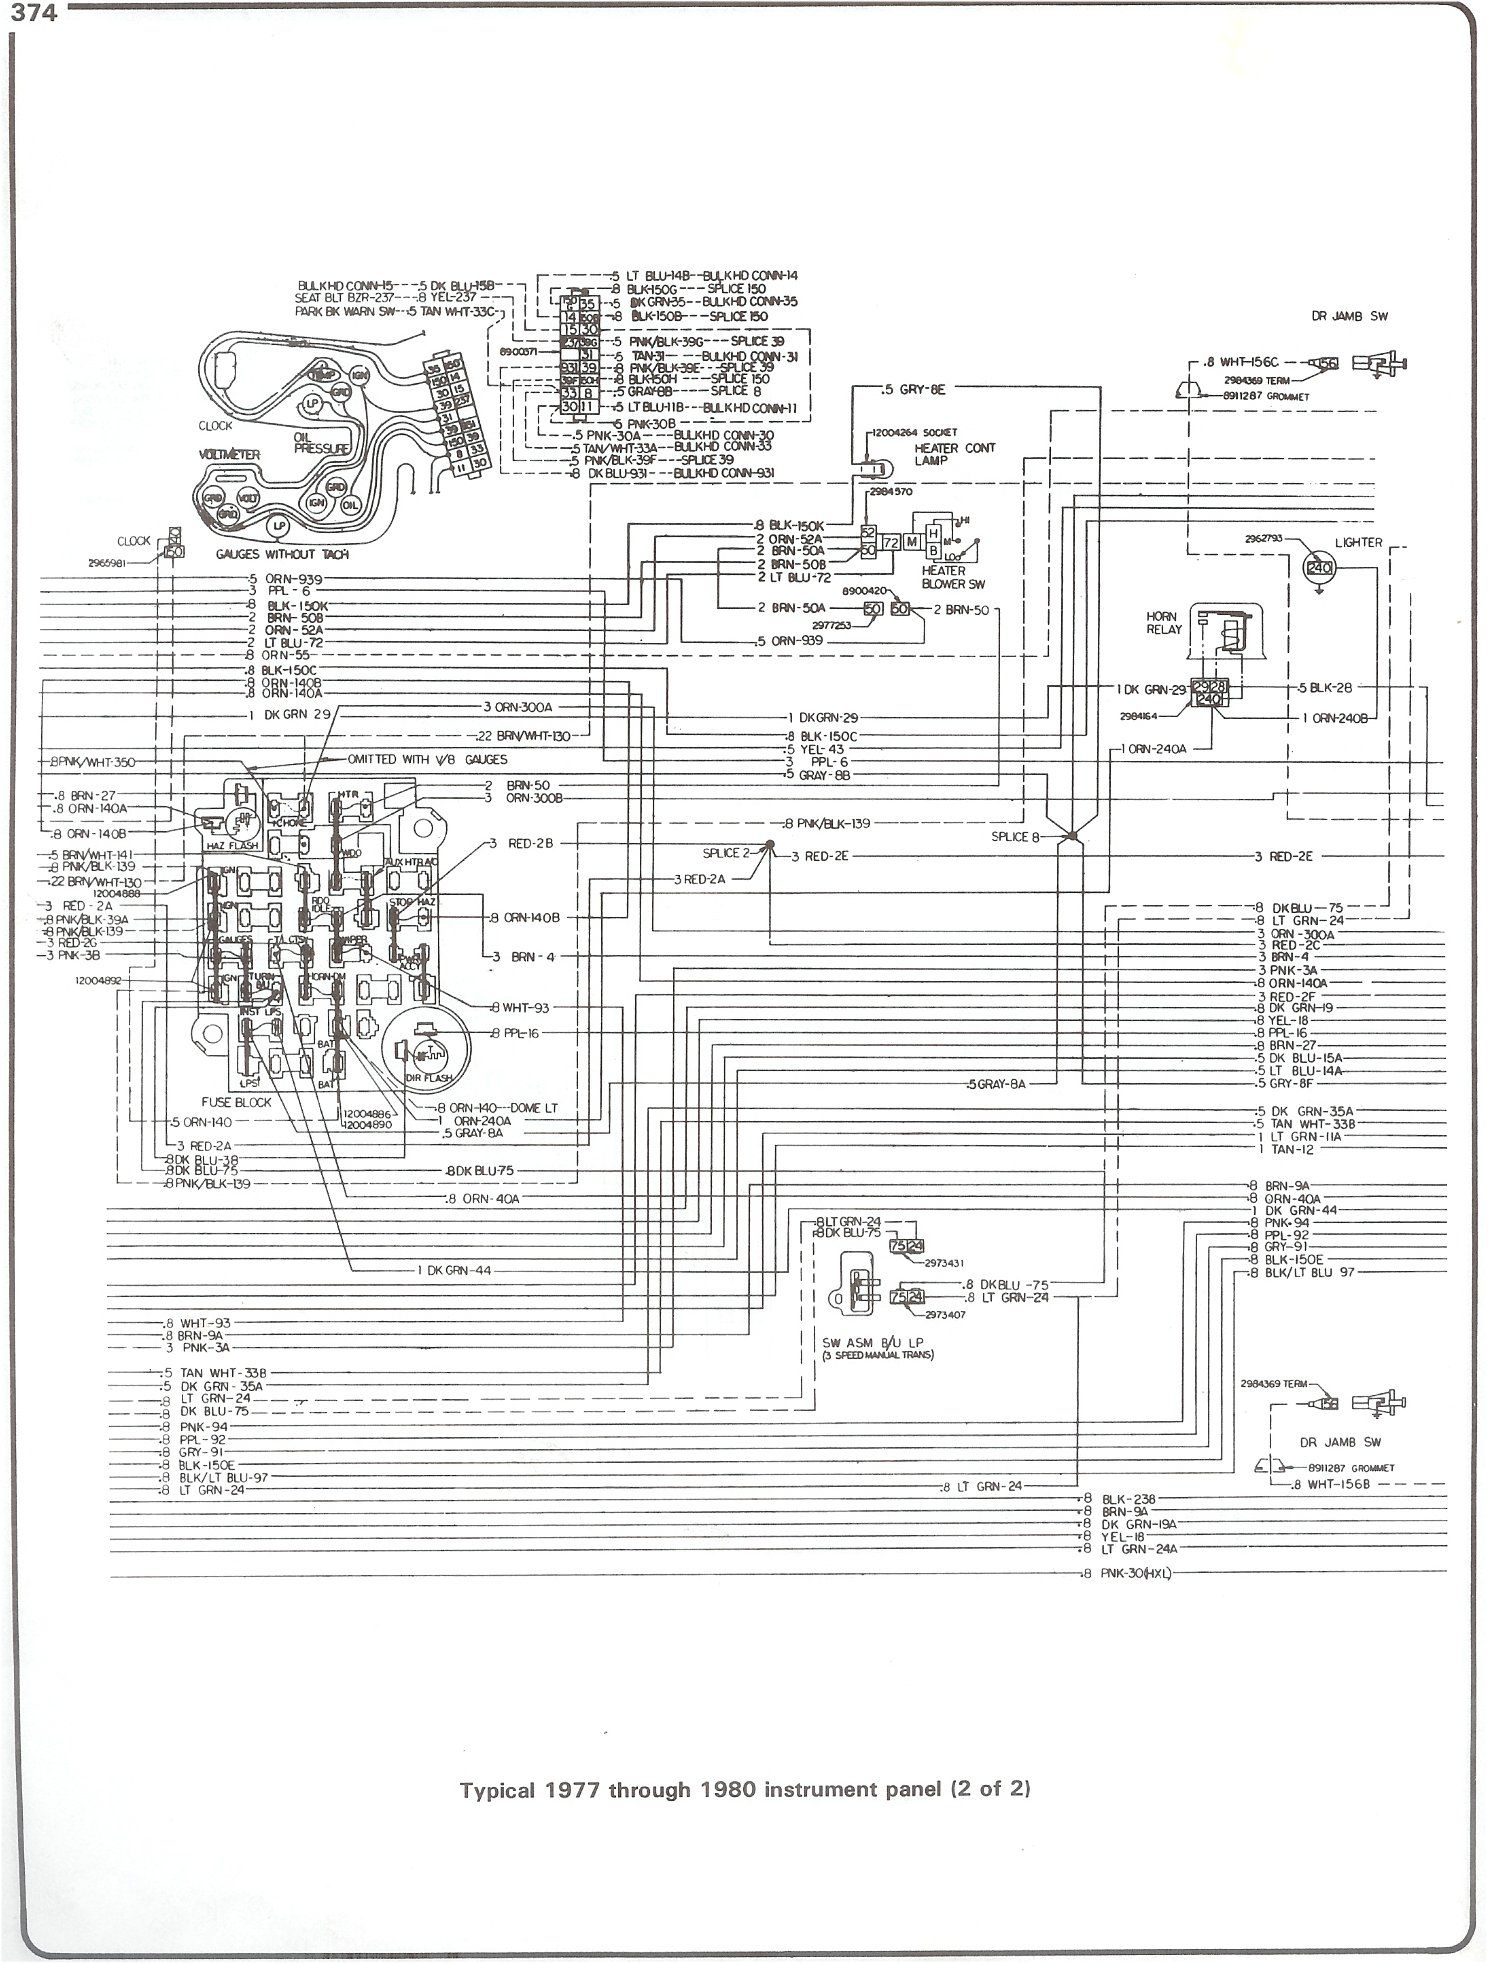 small resolution of instrument panel of 1981 chevy c10 fuse box wiring diagram with heater blower and fuse block or dimmer flasher wiring diagram